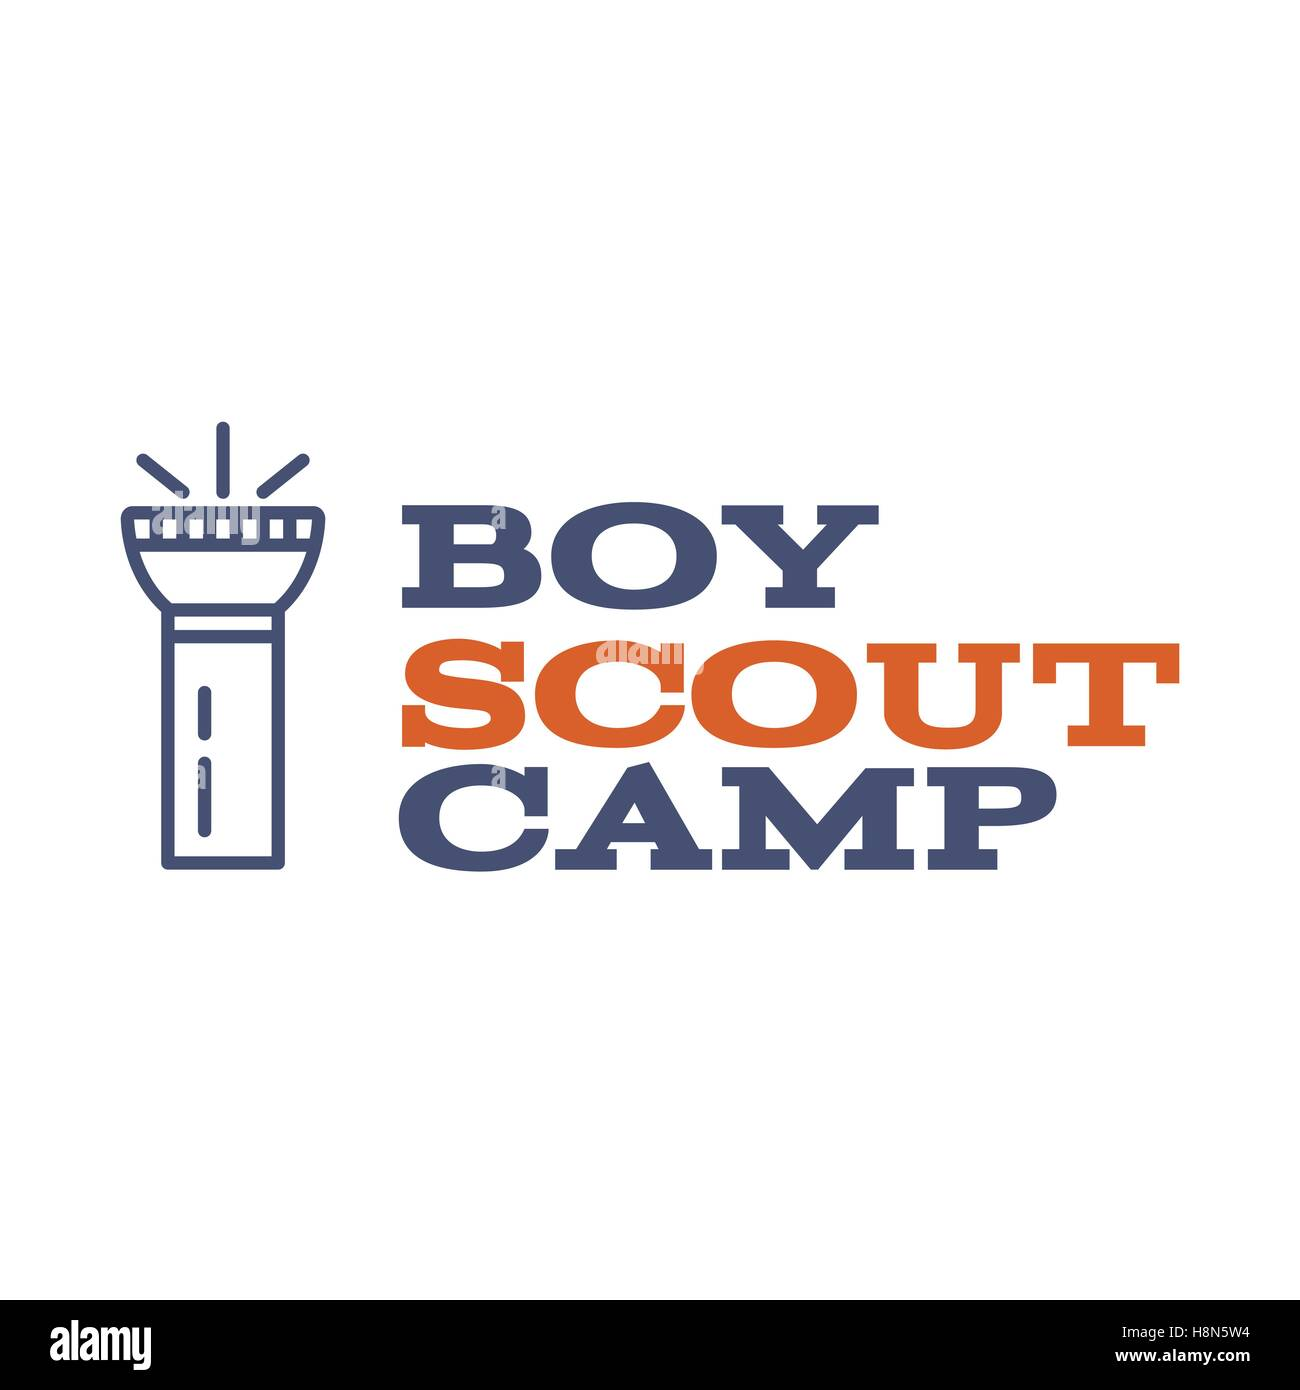 Boy scout camp logo design with typography and travel element - flashlight. Vector text. Hiking trail, backpacking - Stock Image